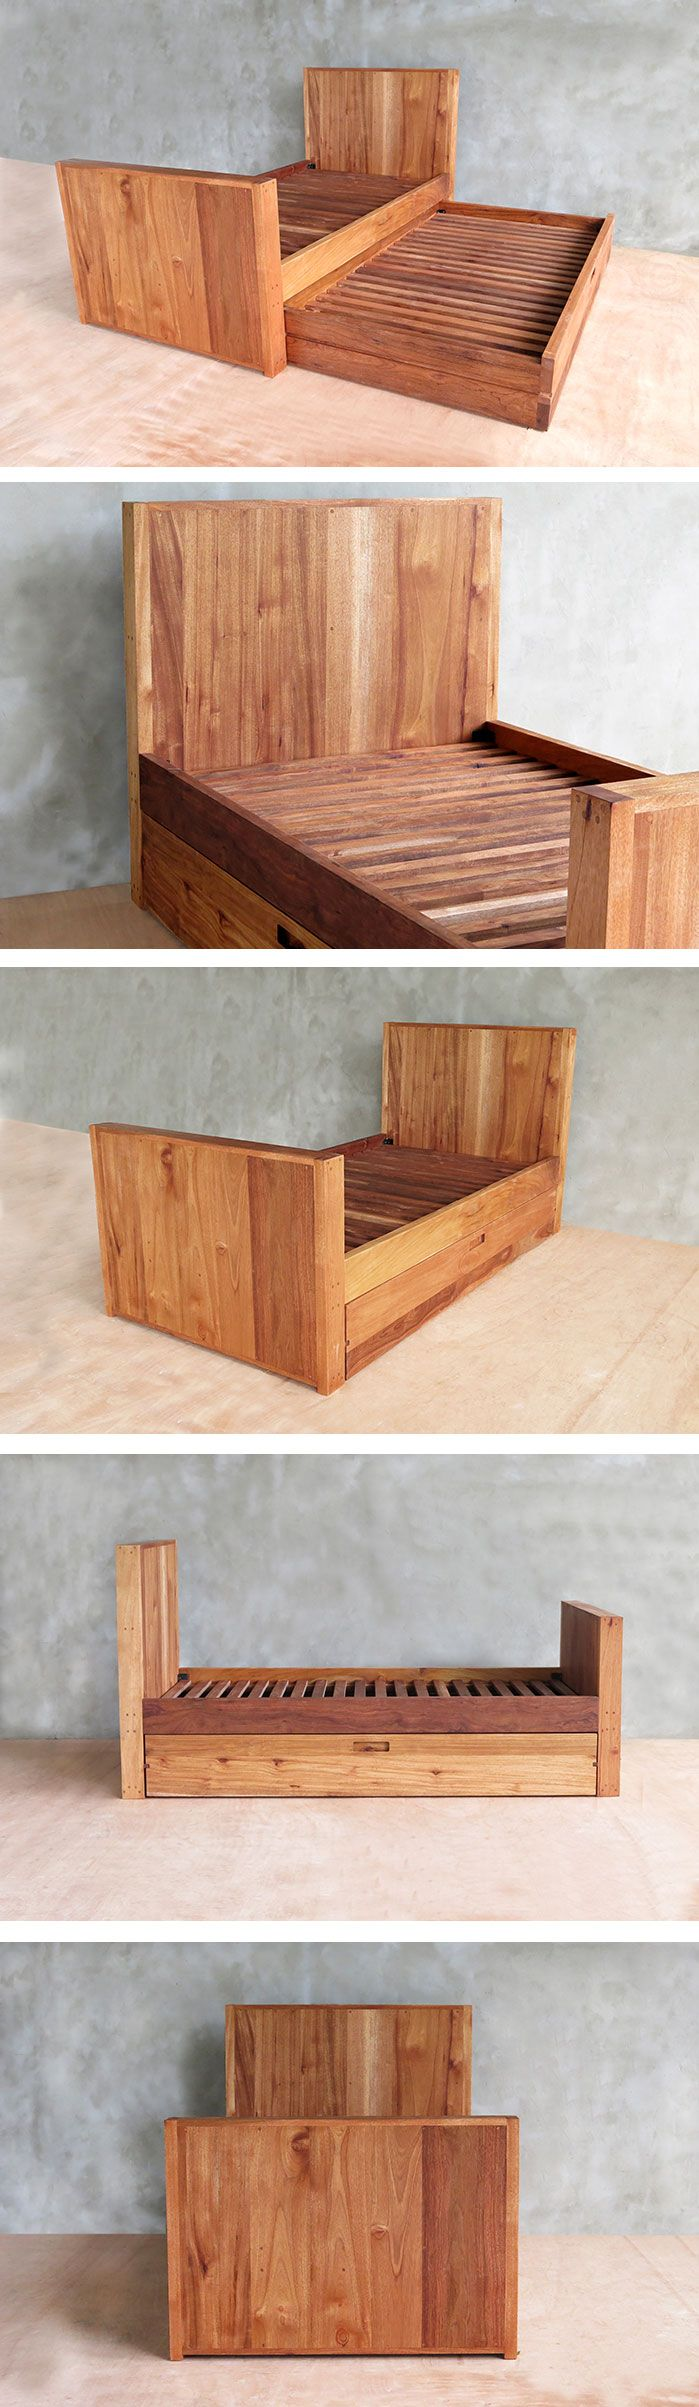 Attractive Custom Mahogany Twin Trundle Bed By Masaya U0026 Company For Family In Sag  Harbor, New York. Made To Order From Sustainably Sourced Cedro Macho  (Nicaraguan ...